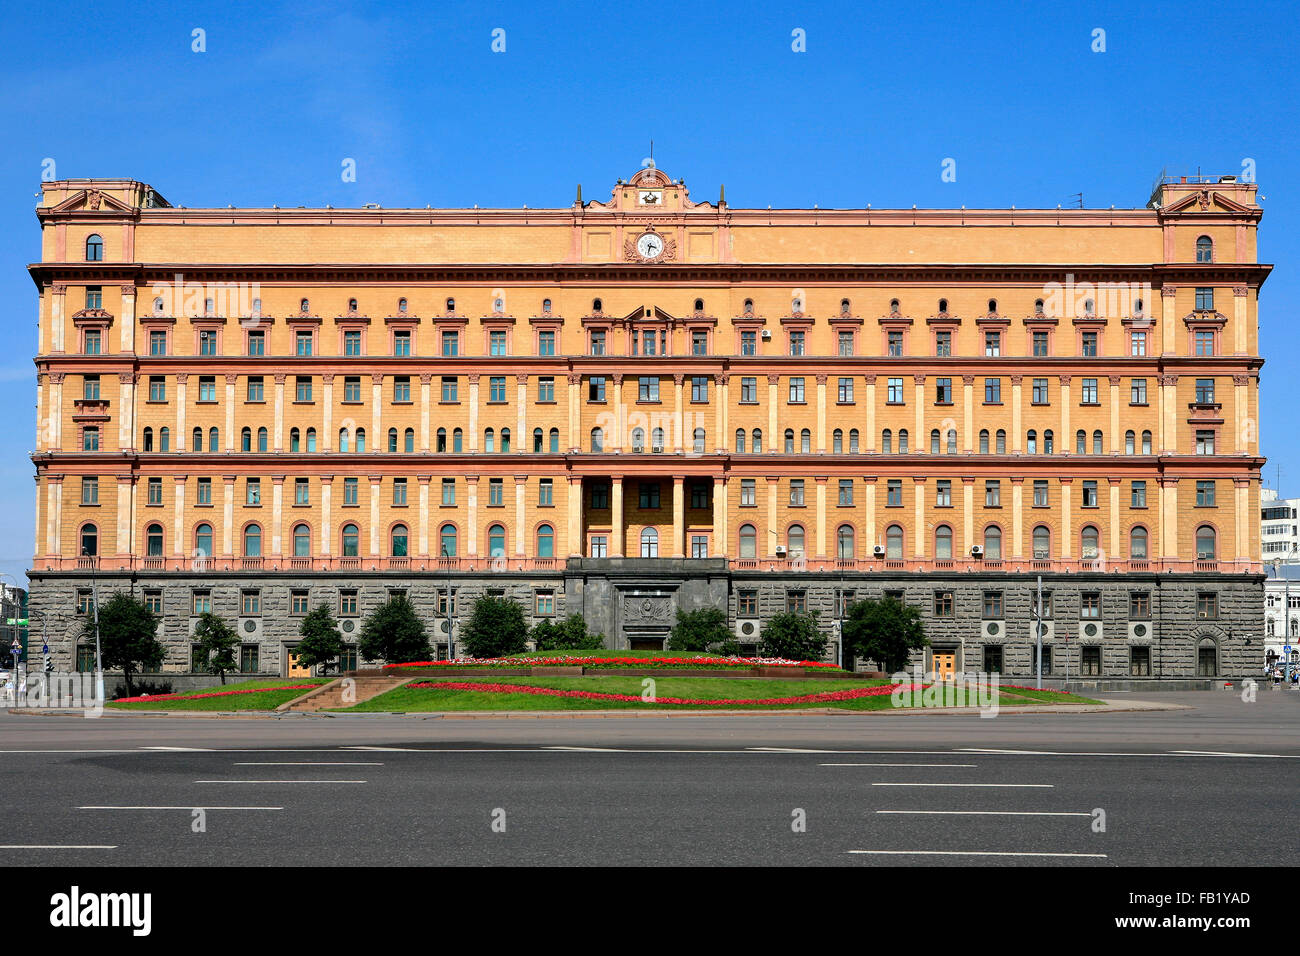 The Lubyanka Building (former headquarters of the KGB and affiliated prison) in Moscow, Russia - Stock Image